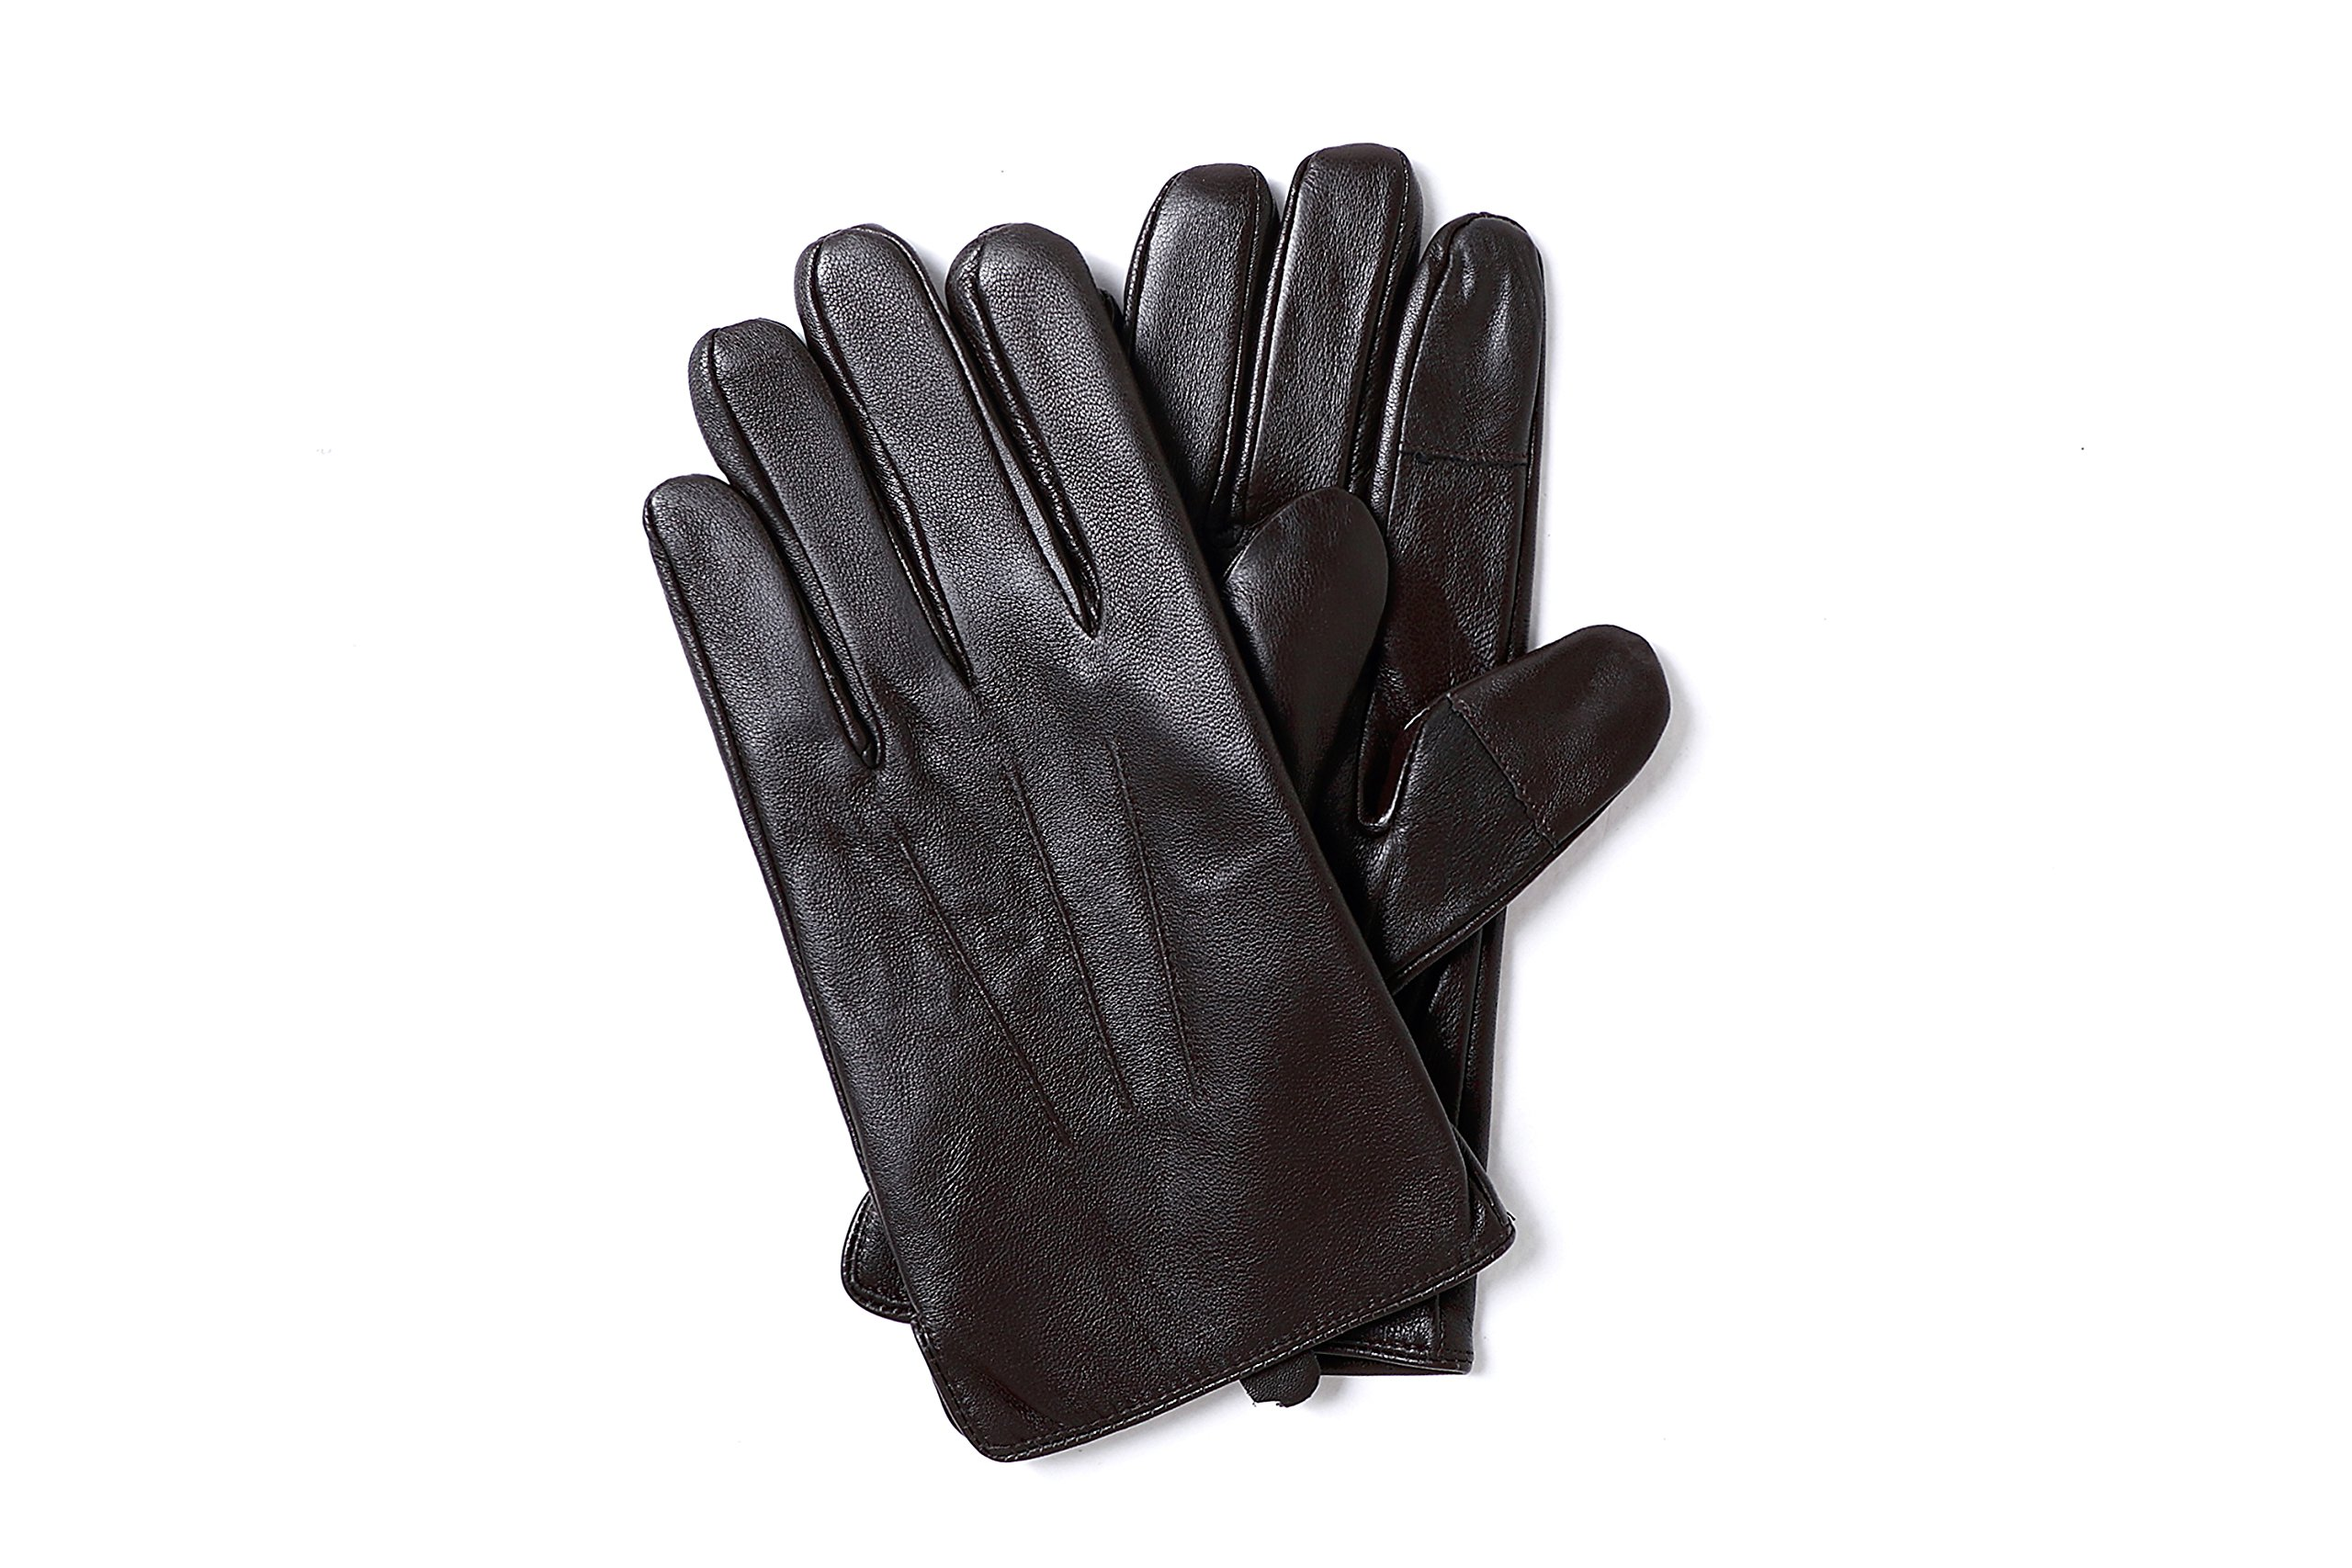 YISEVEN Men's Sheepskin Leather Gloves Three Points Wool Lined Real Luxury Design Soft Hand Warm Fur Heated Lining for Winter Stylish Dress Work Xmas Gift and Motorcycle Driving, Brown 095/Large by YISEVEN (Image #4)